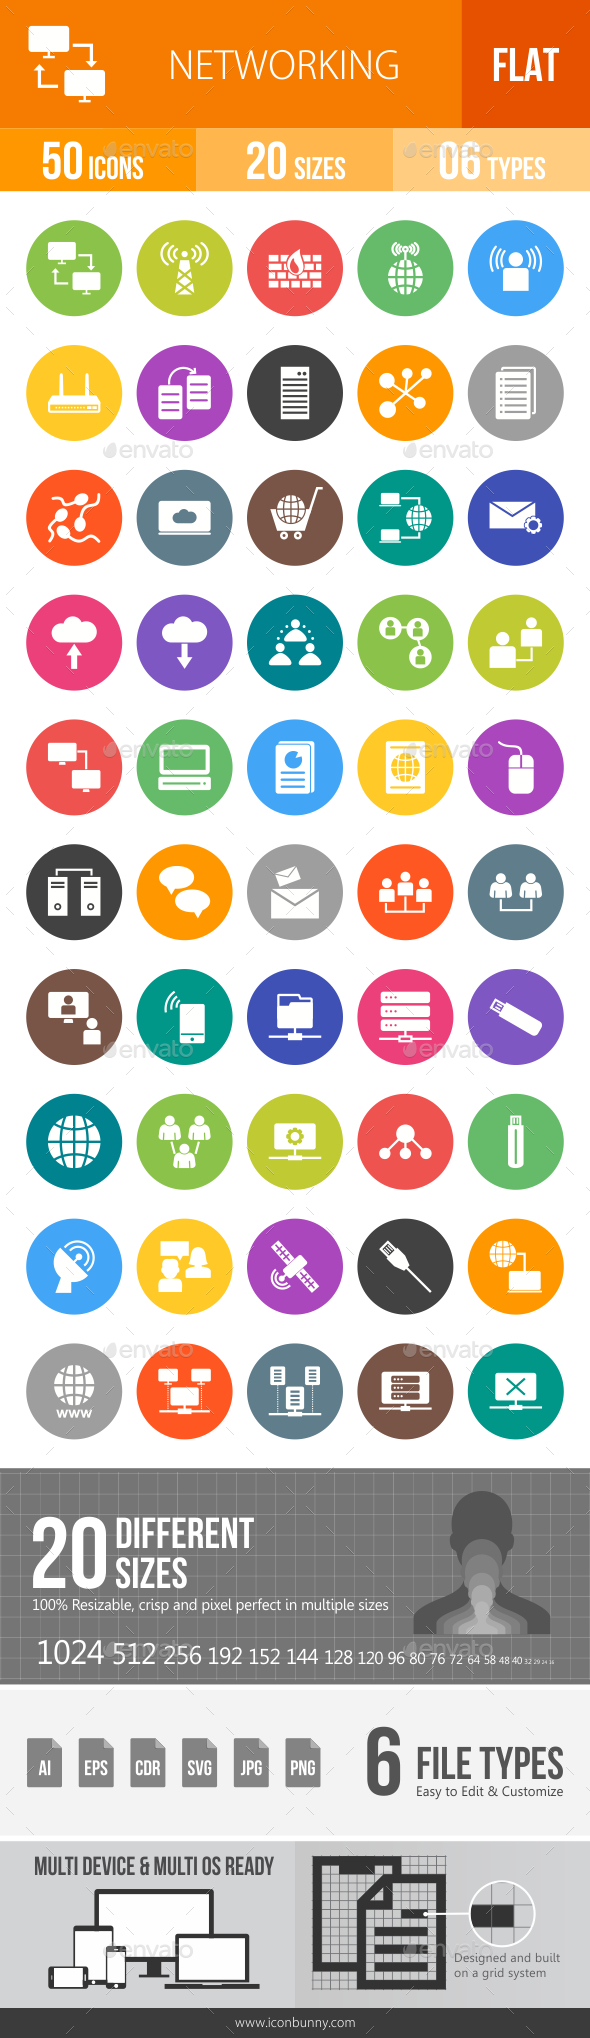 Networking Flat Round Icons - Icons